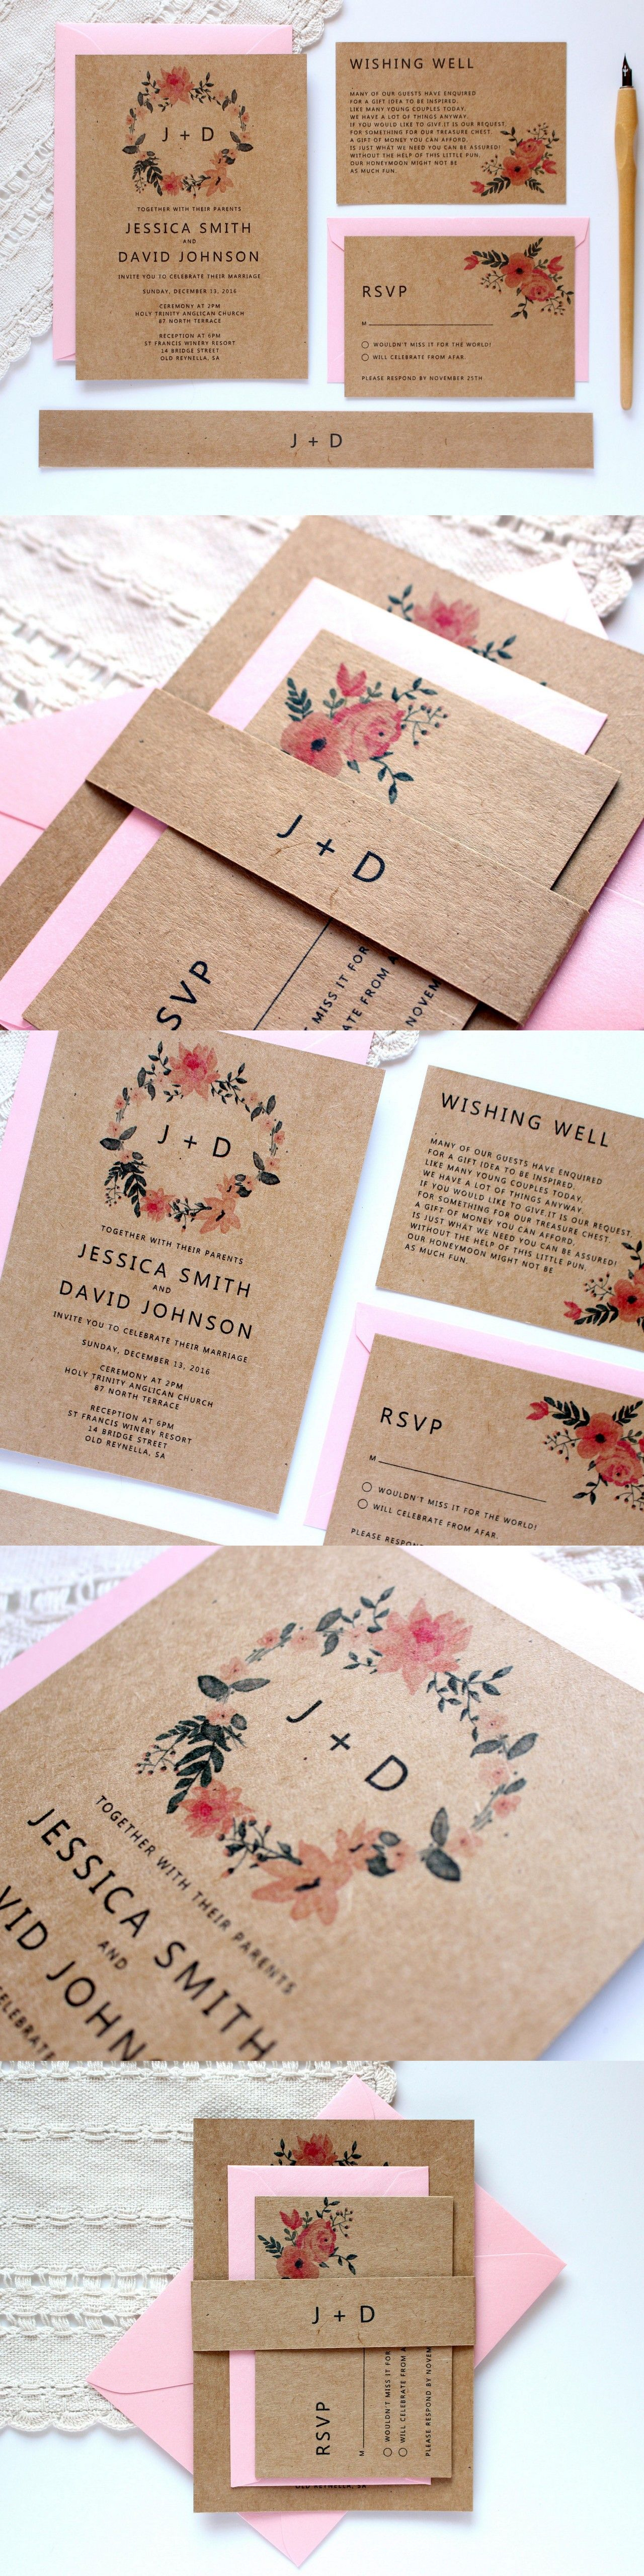 Kraft wedding invitation with pink floral wreath by Paper Bound Love ...